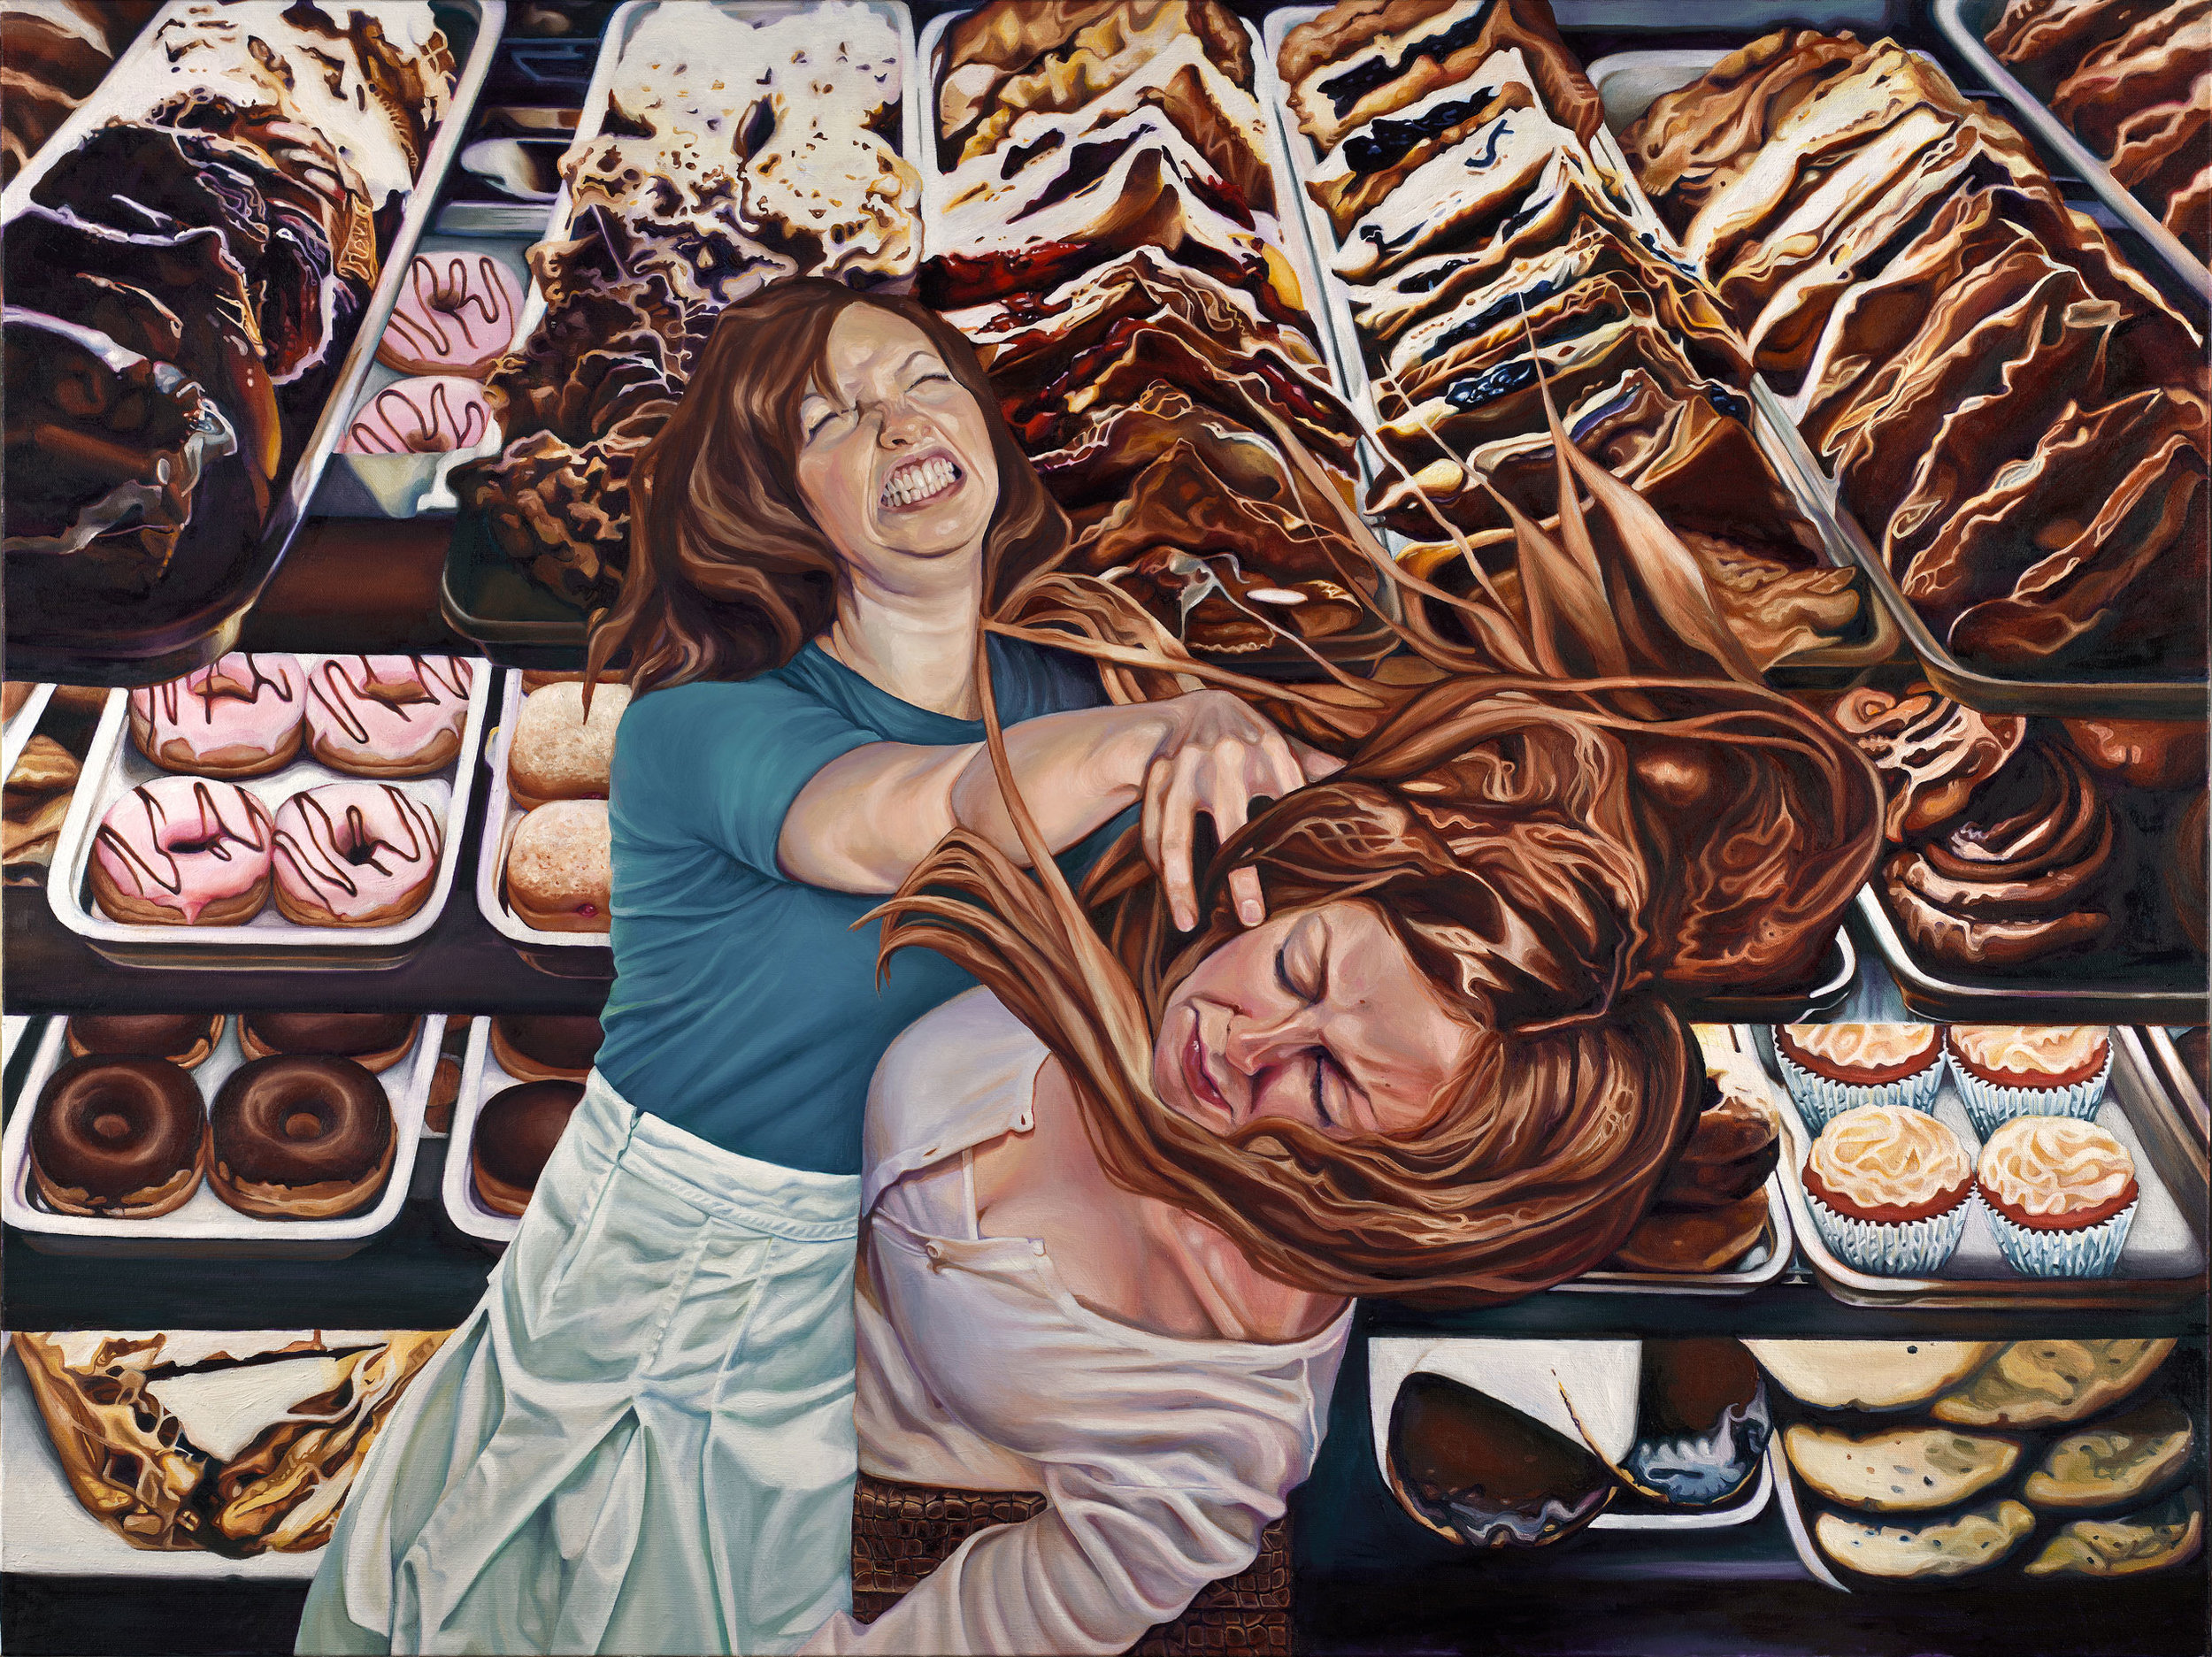 Bakery Brawl , oil on canvas, 36 x 48 inches, 2011